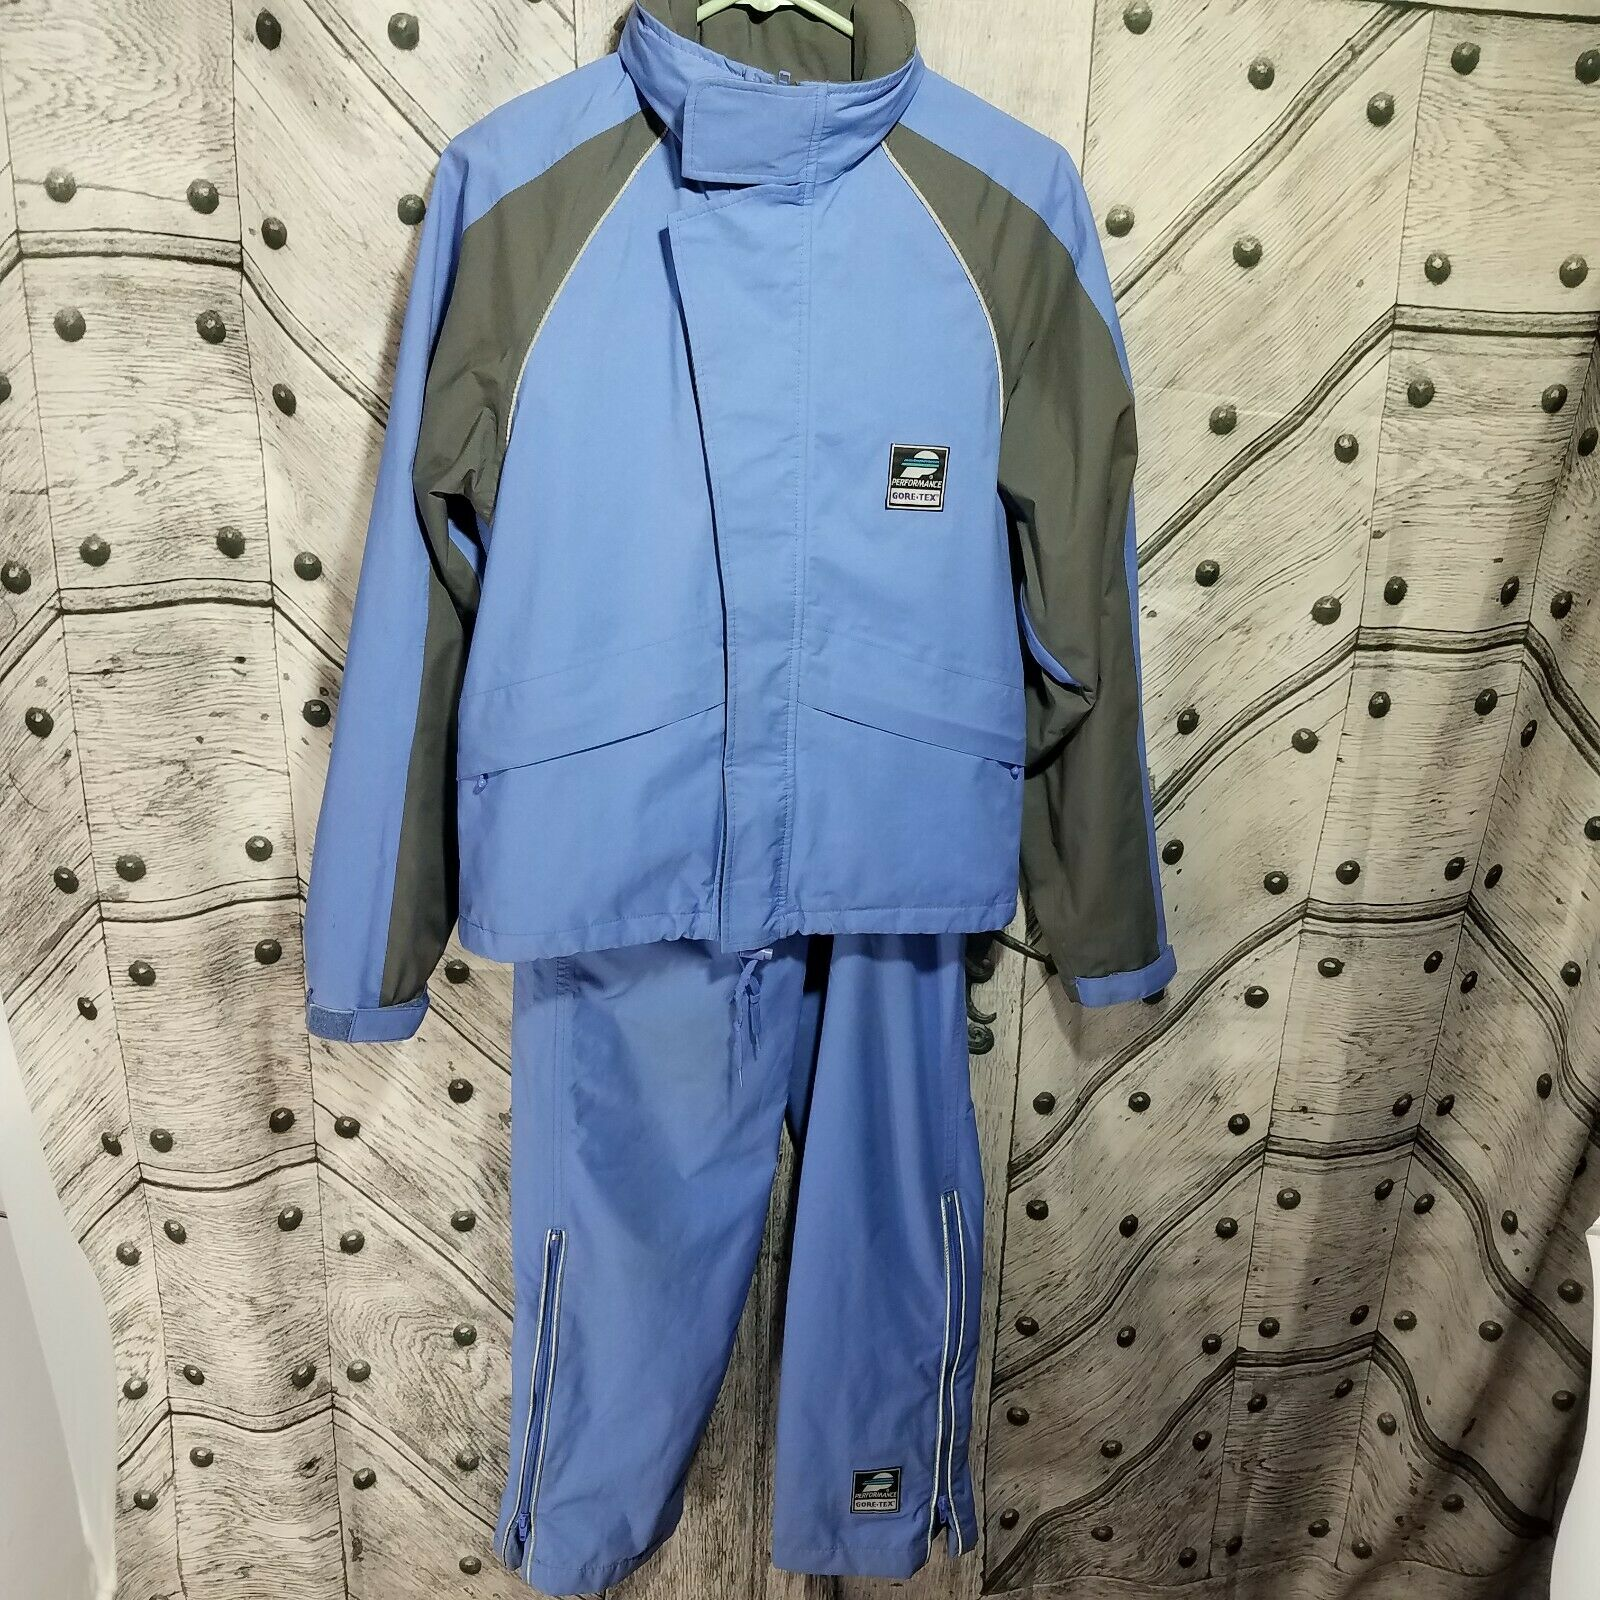 Vintage Performance Cycling Wear donna Small XS 2 Piece Gore Tex Suit Outfit